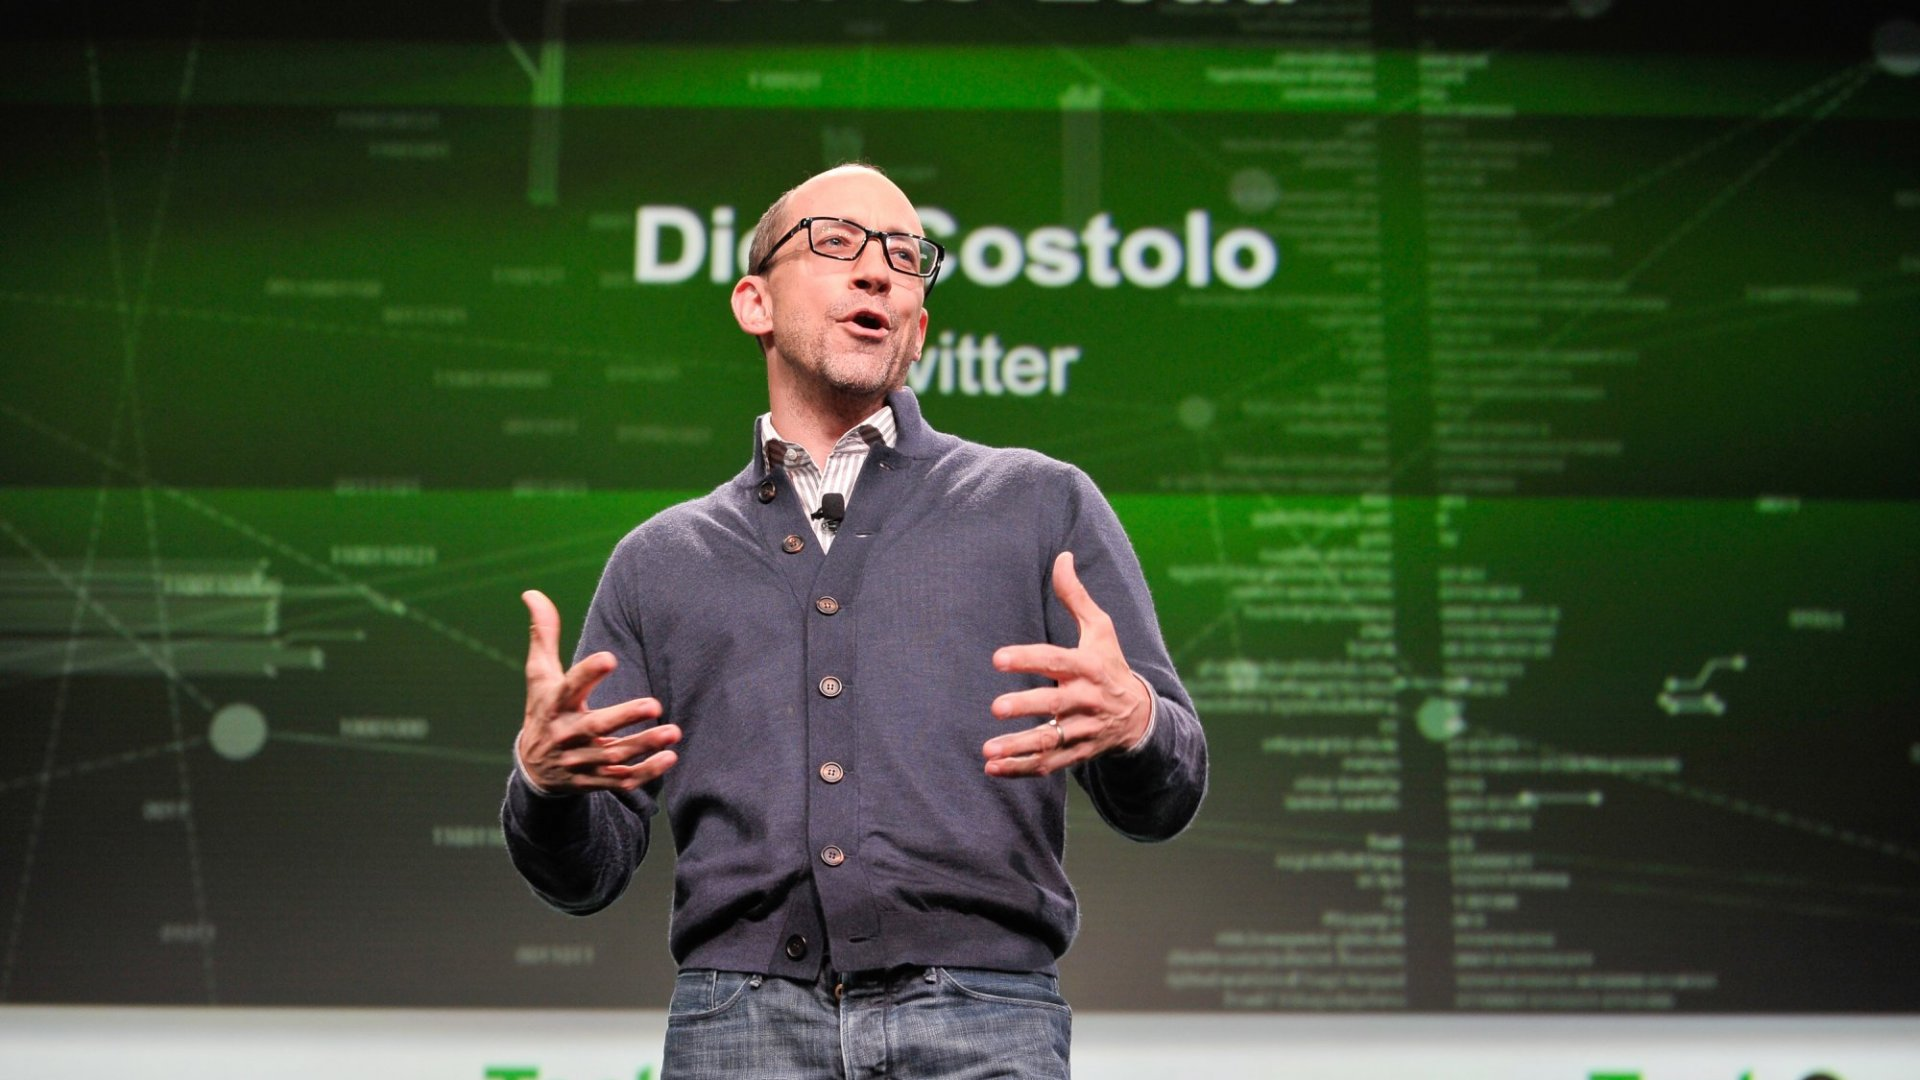 3 Remarkably Powerful Ways Professional Comedy Made These Startup CEOs Super Successful